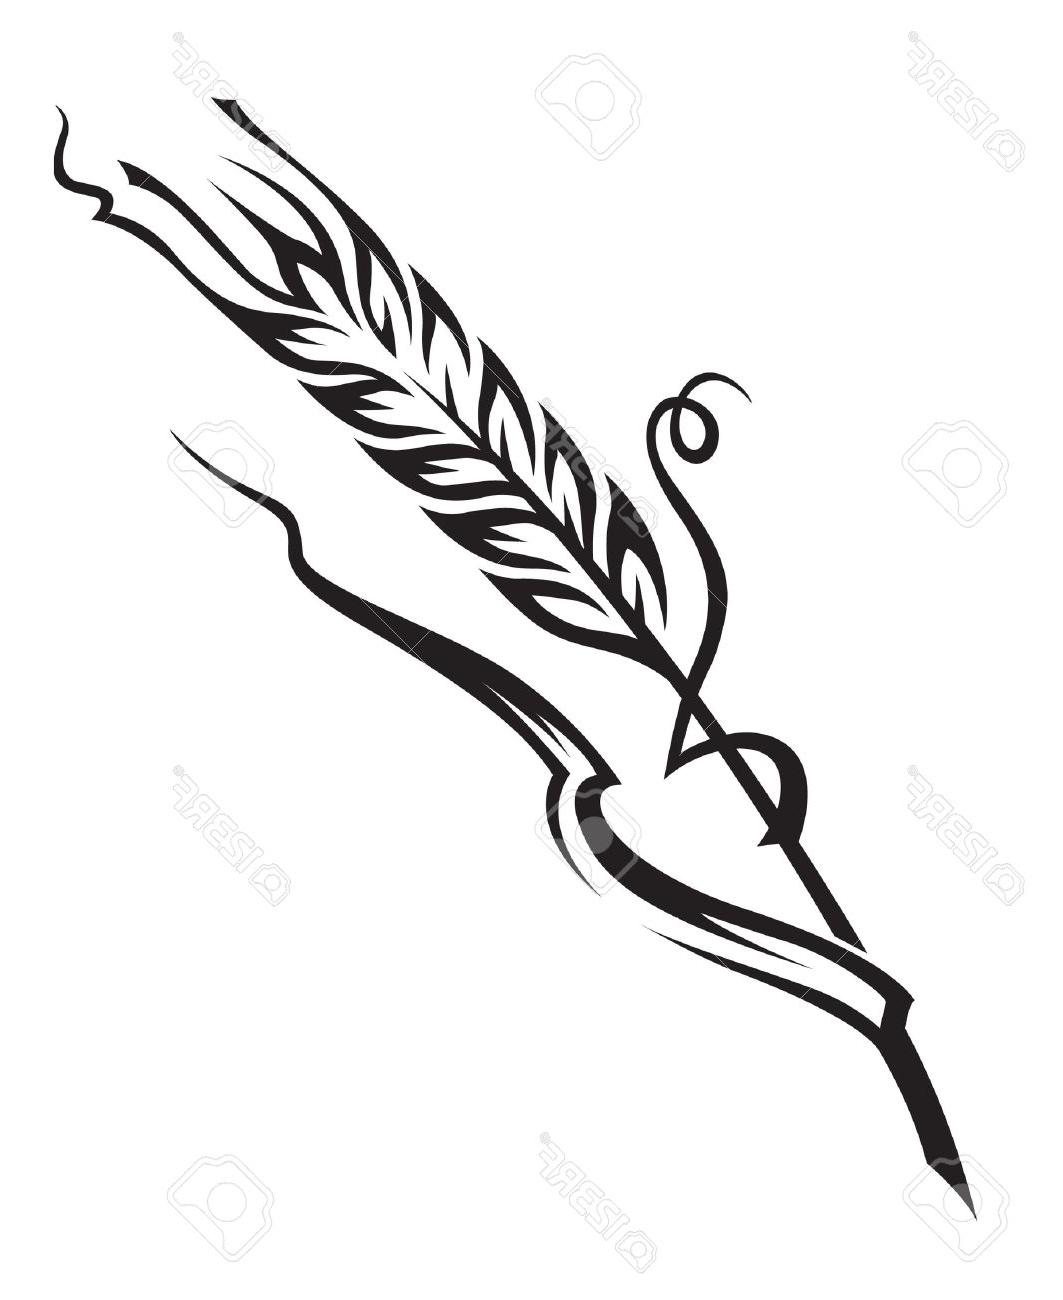 1063x1300 Best Free Wheat Stock Vector Rice Grain Pictures